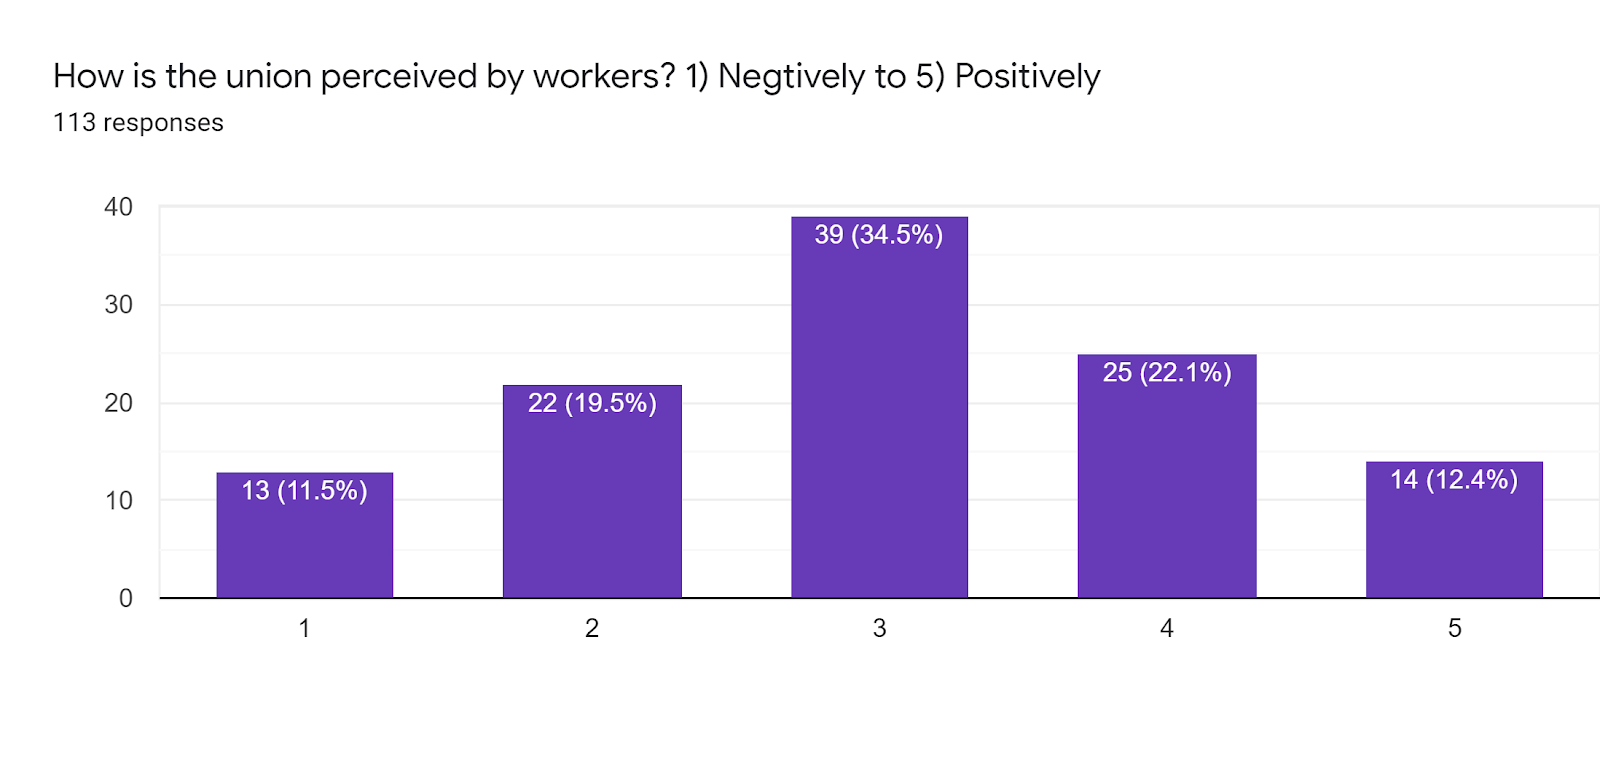 Forms response chart. Question title: How is the union perceived by workers? 1) Negtively to 5) Positively. Number of responses: 113 responses.